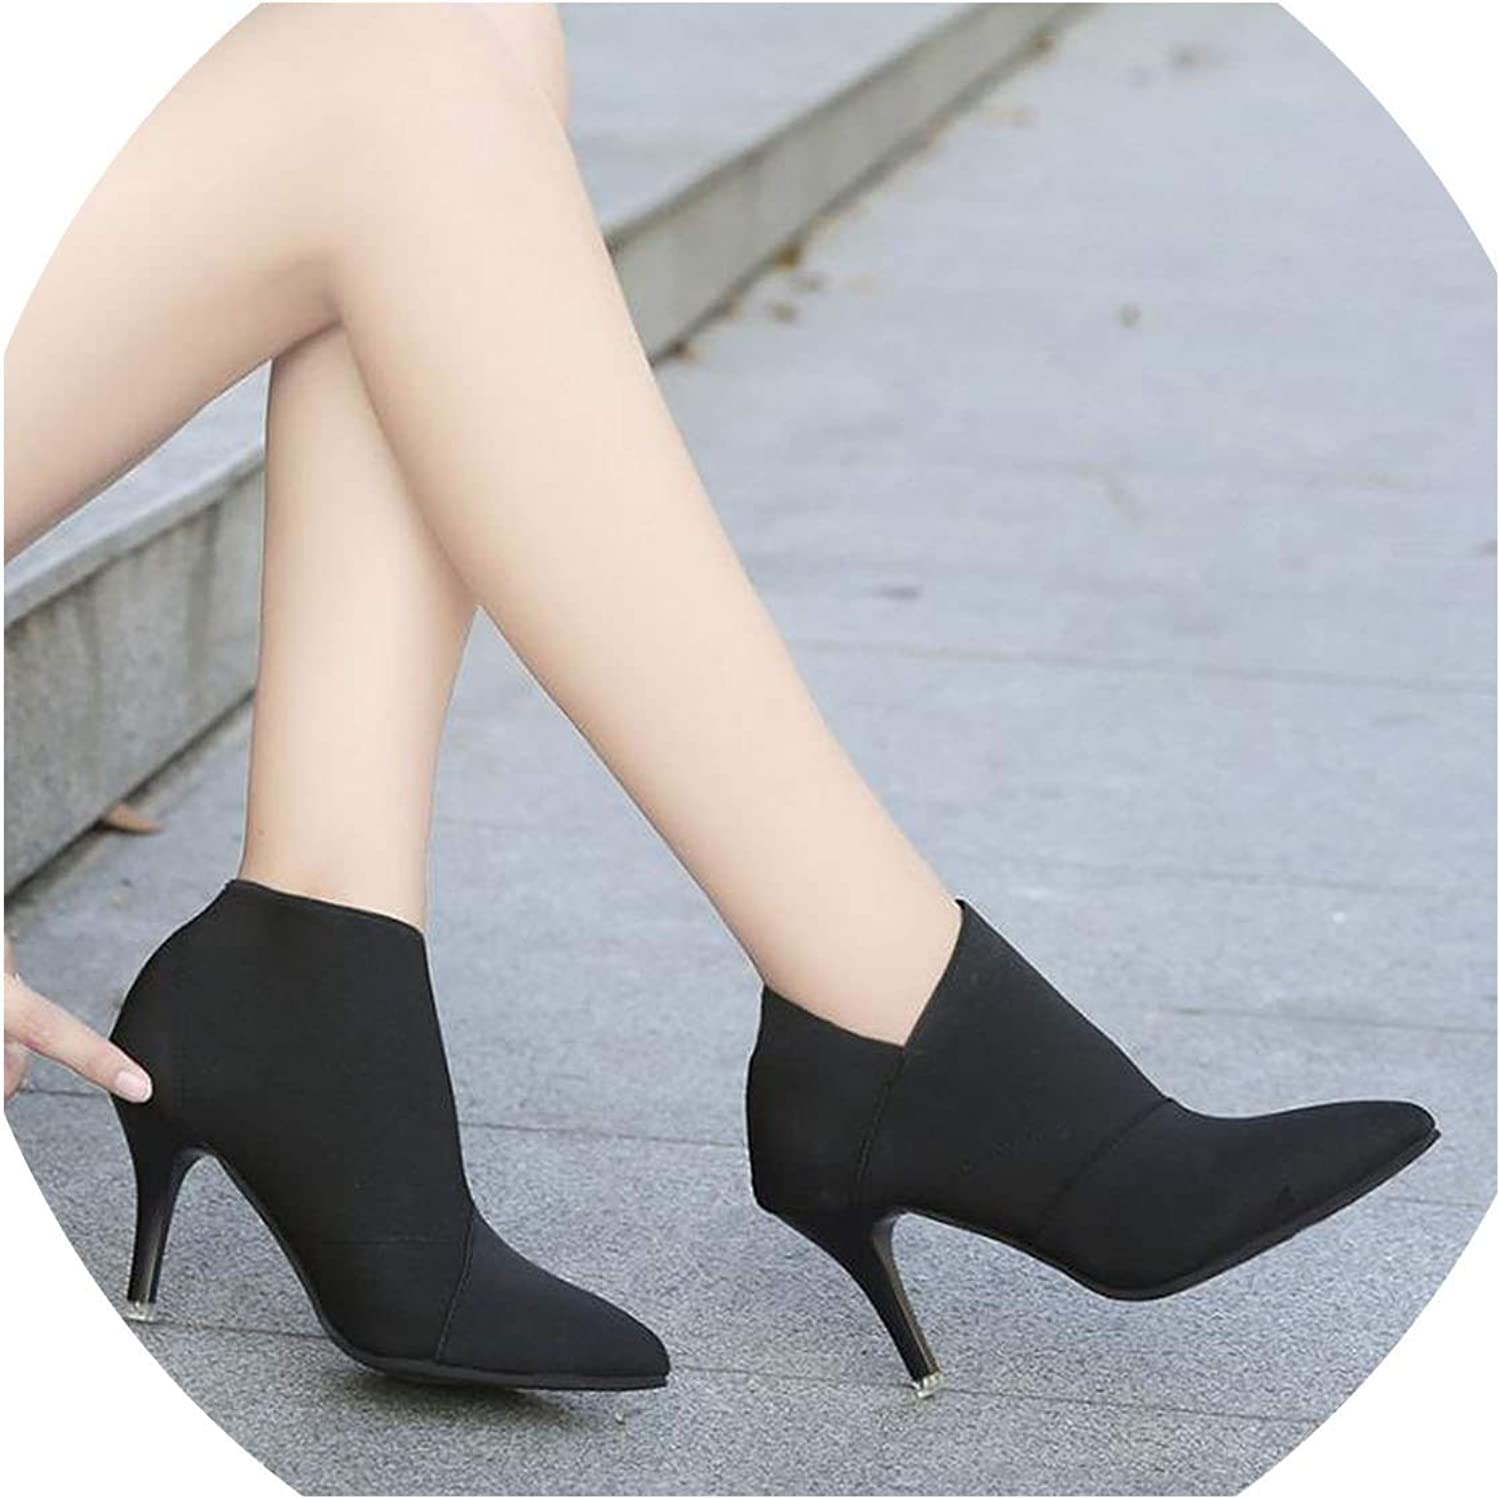 Pointed Toe High Heels Women Basic Casual Fitted Single Fashion Outwear shoes